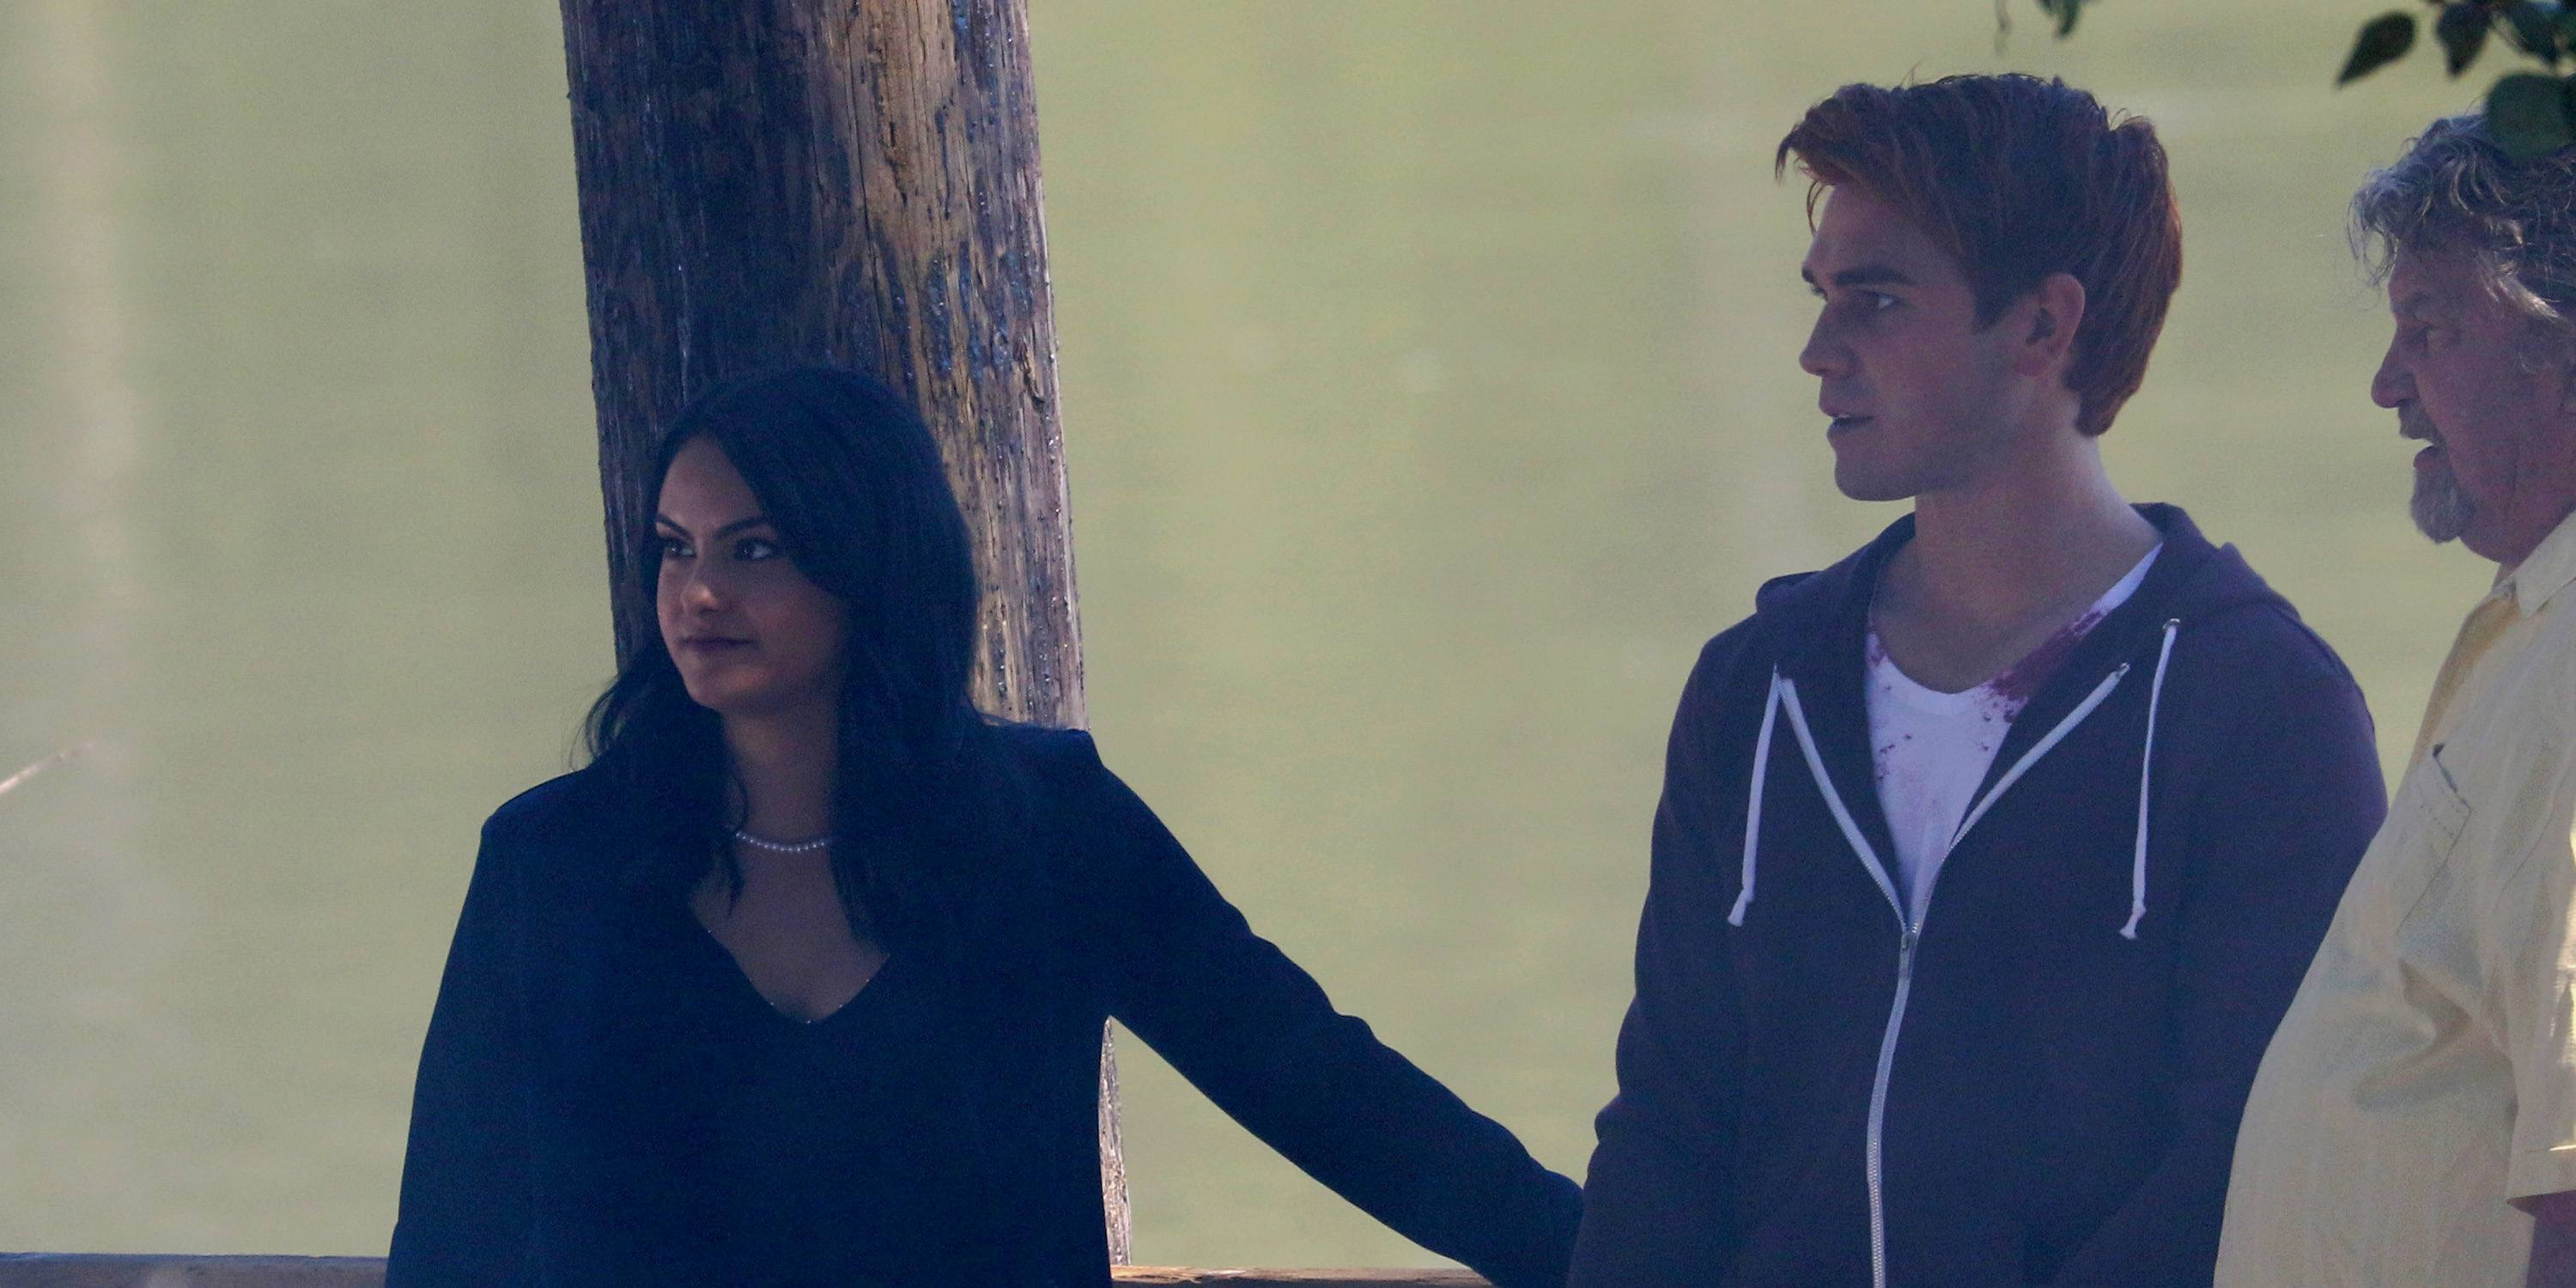 KJ Apa and Camila Mendes shoot 'Riverdale' season 2 in Fort Langley (PHOTOS)